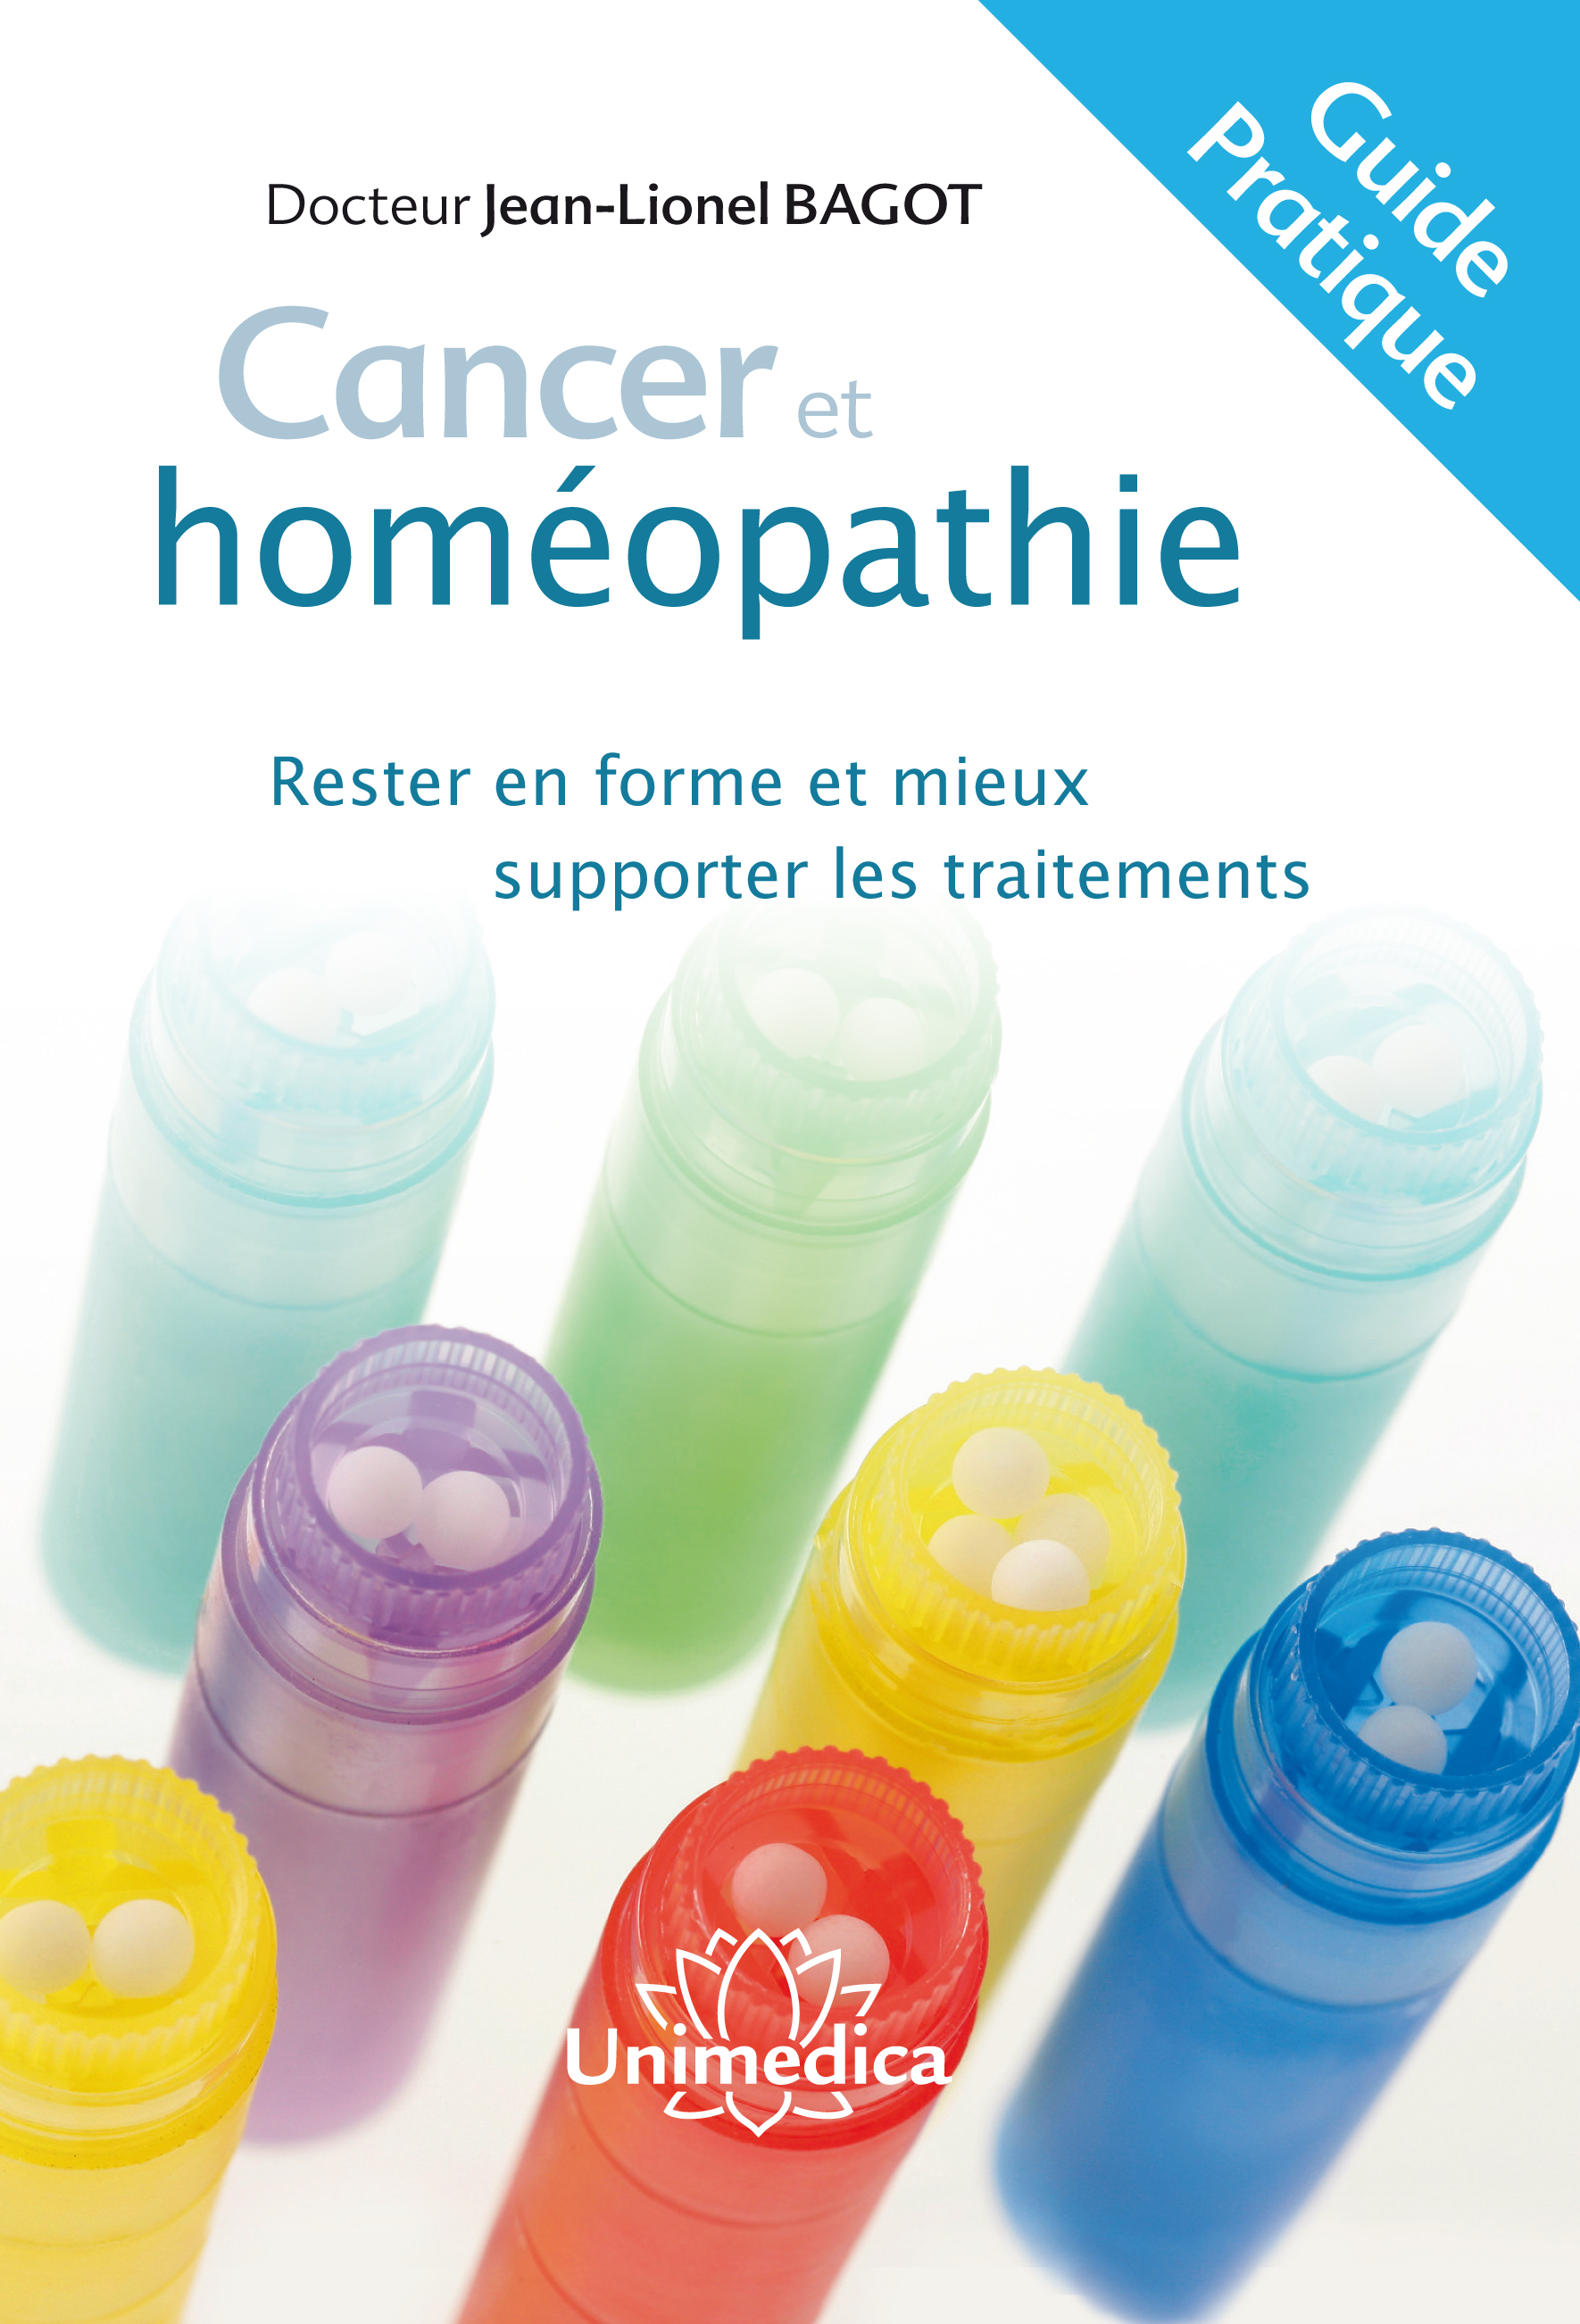 CANCER ET HOMEOPATHIE